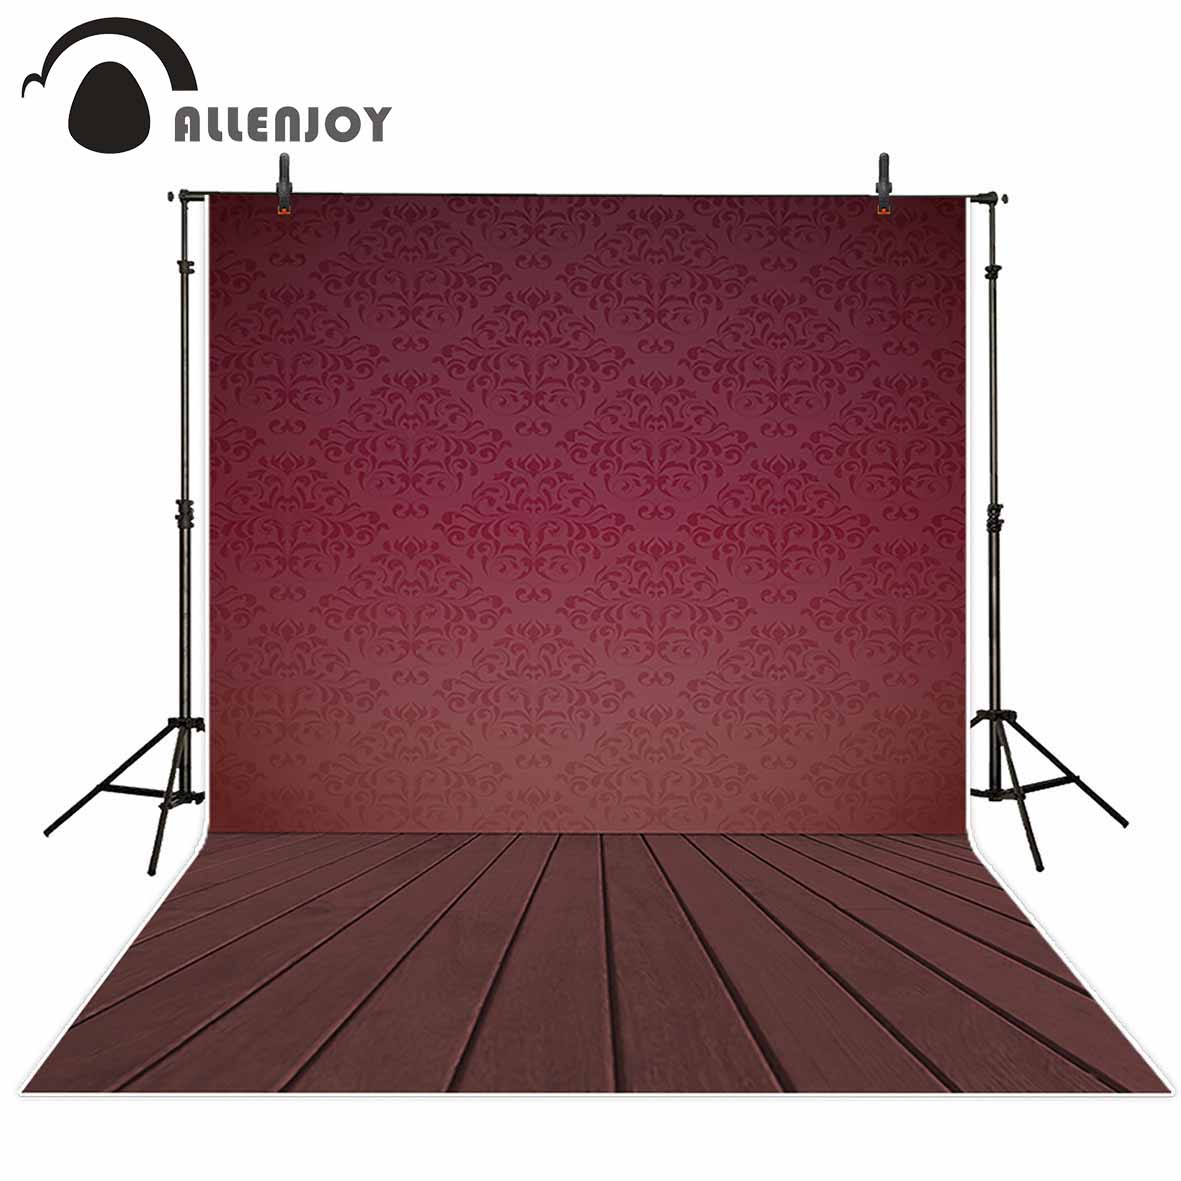 Allenjoy vinyl photographic background Red noble decoration damask wallpaper Photographic background for study Photo background